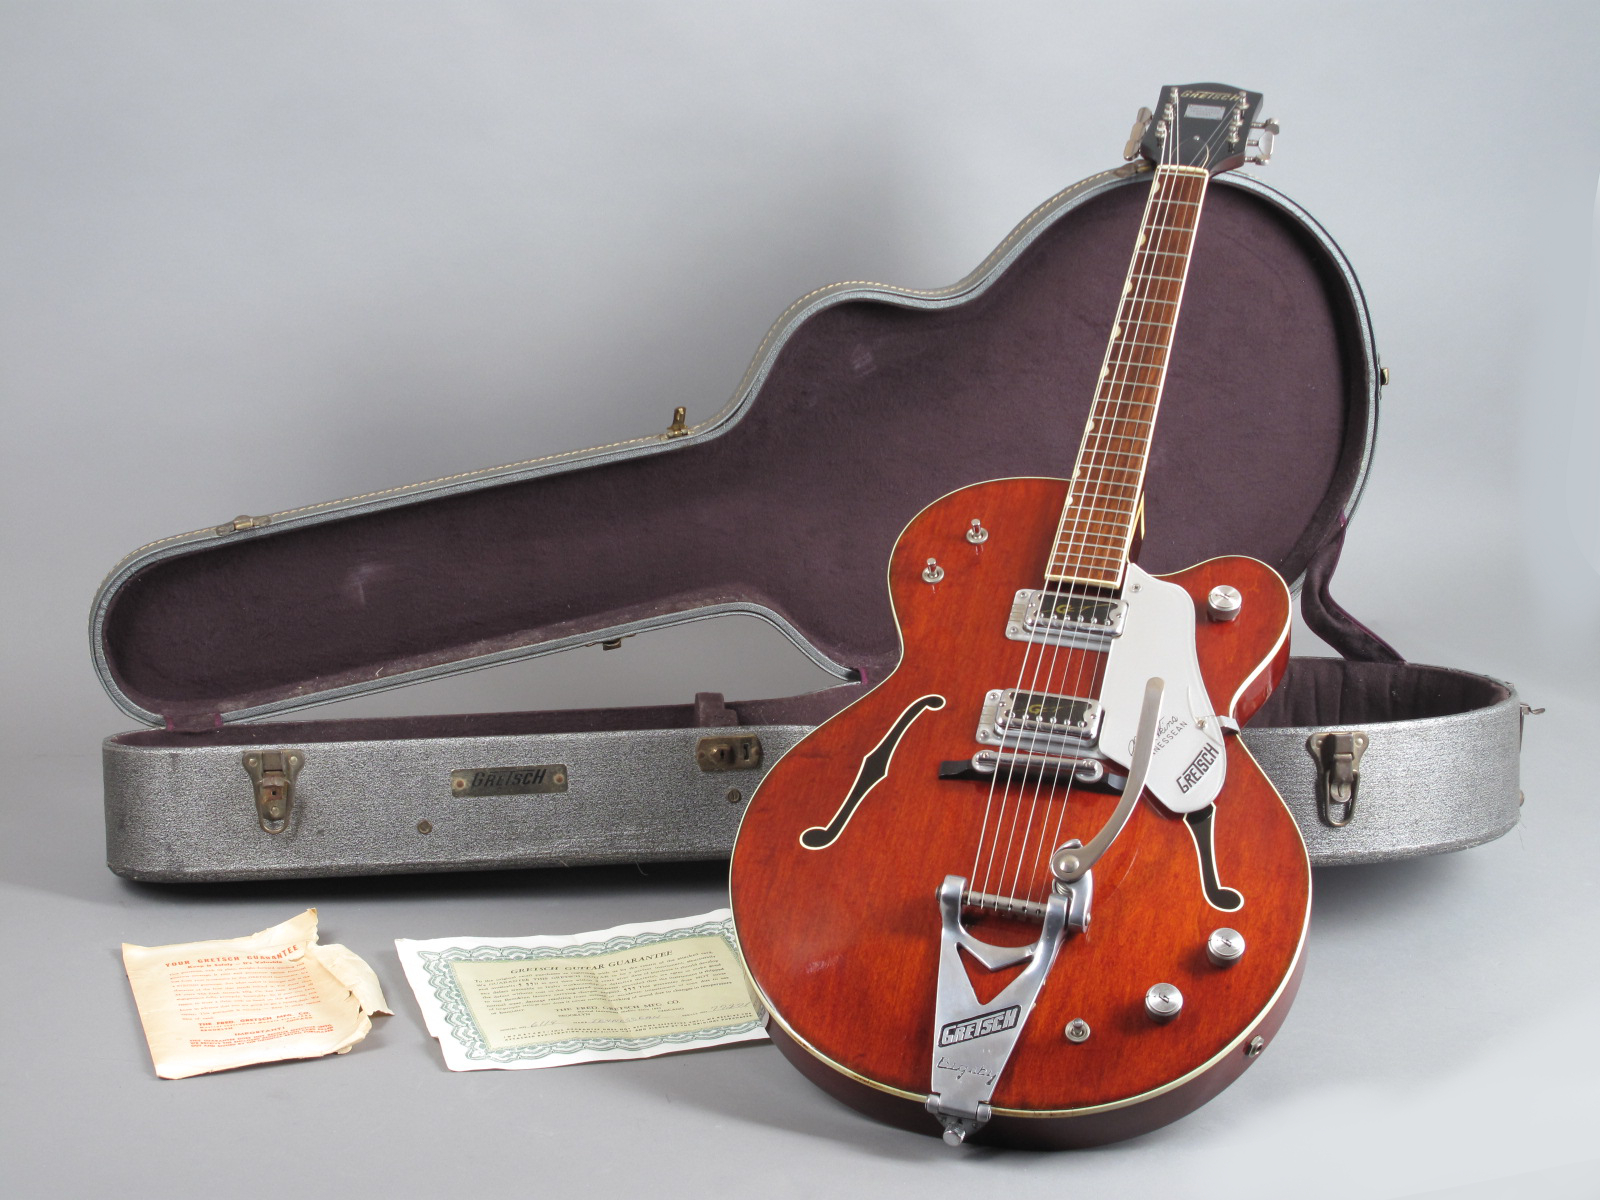 https://guitarpoint.de/app/uploads/products/1967-gretsch-chet-atkins-tennessean/1967-Gretsch-6119-Tennessean-77271-13.jpg